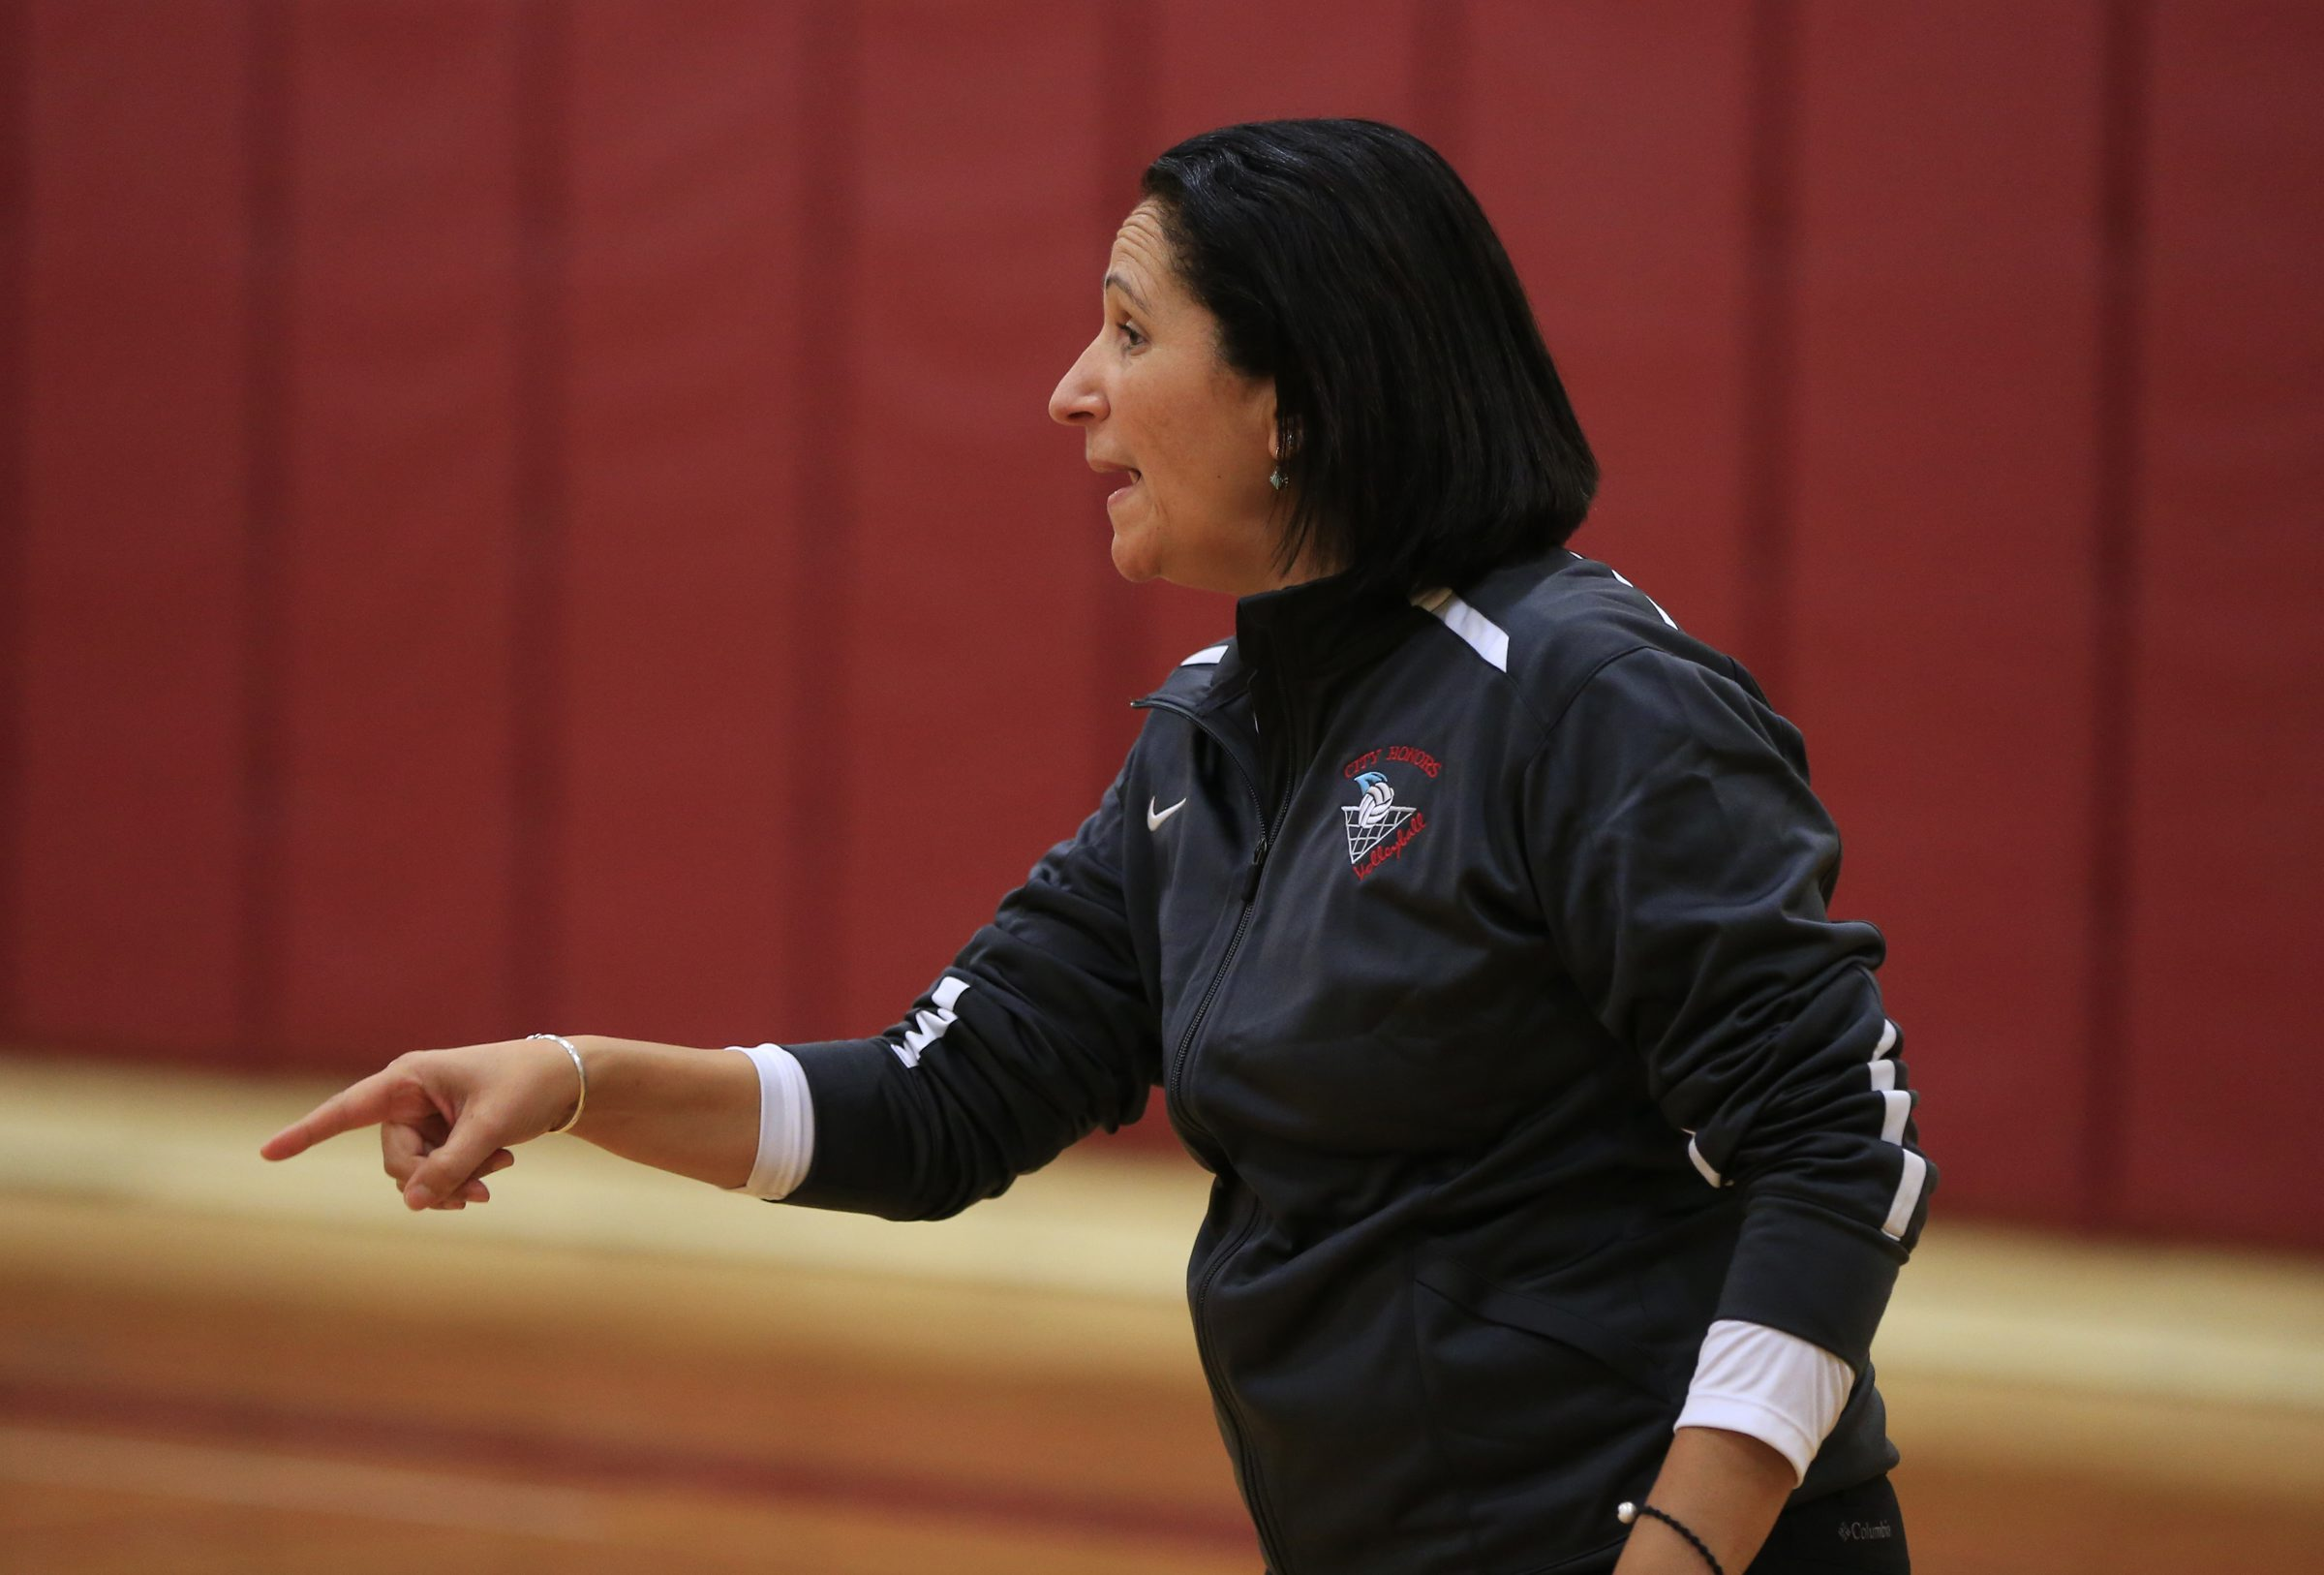 Coach Deb Matos' City Honors softball team has only been able to get in four games through May 1 and has been forced to practice all but one day indoors. (Harry Scull Jr./Buffalo News file photo)